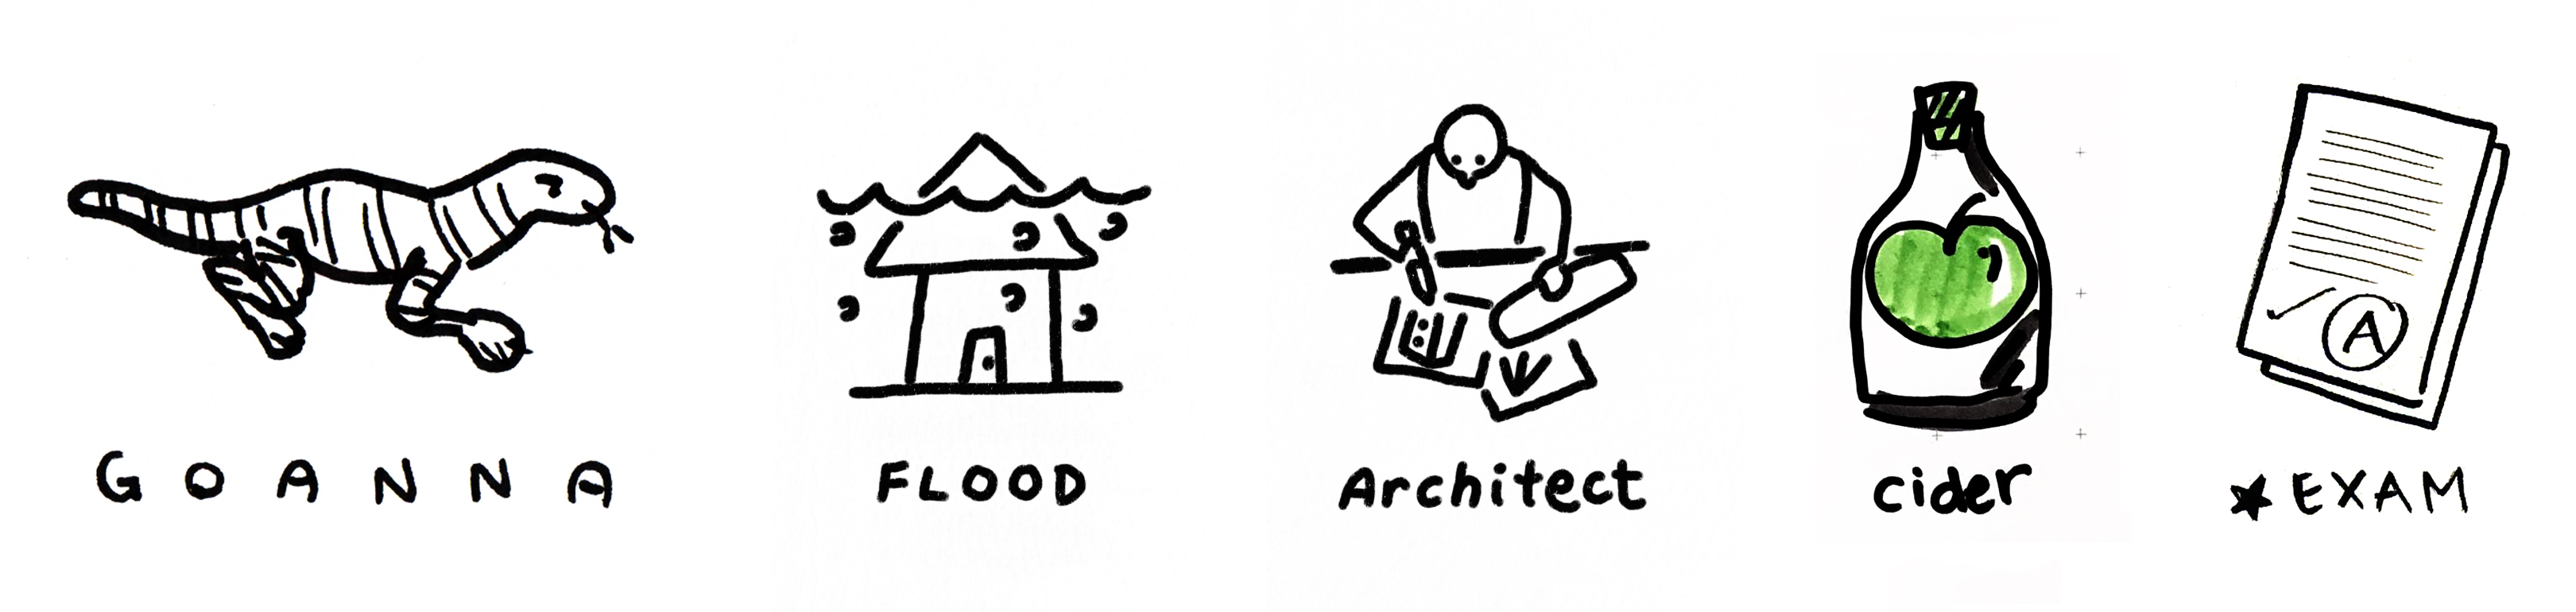 Drawings of a goanna, flood, architect, cider and exam